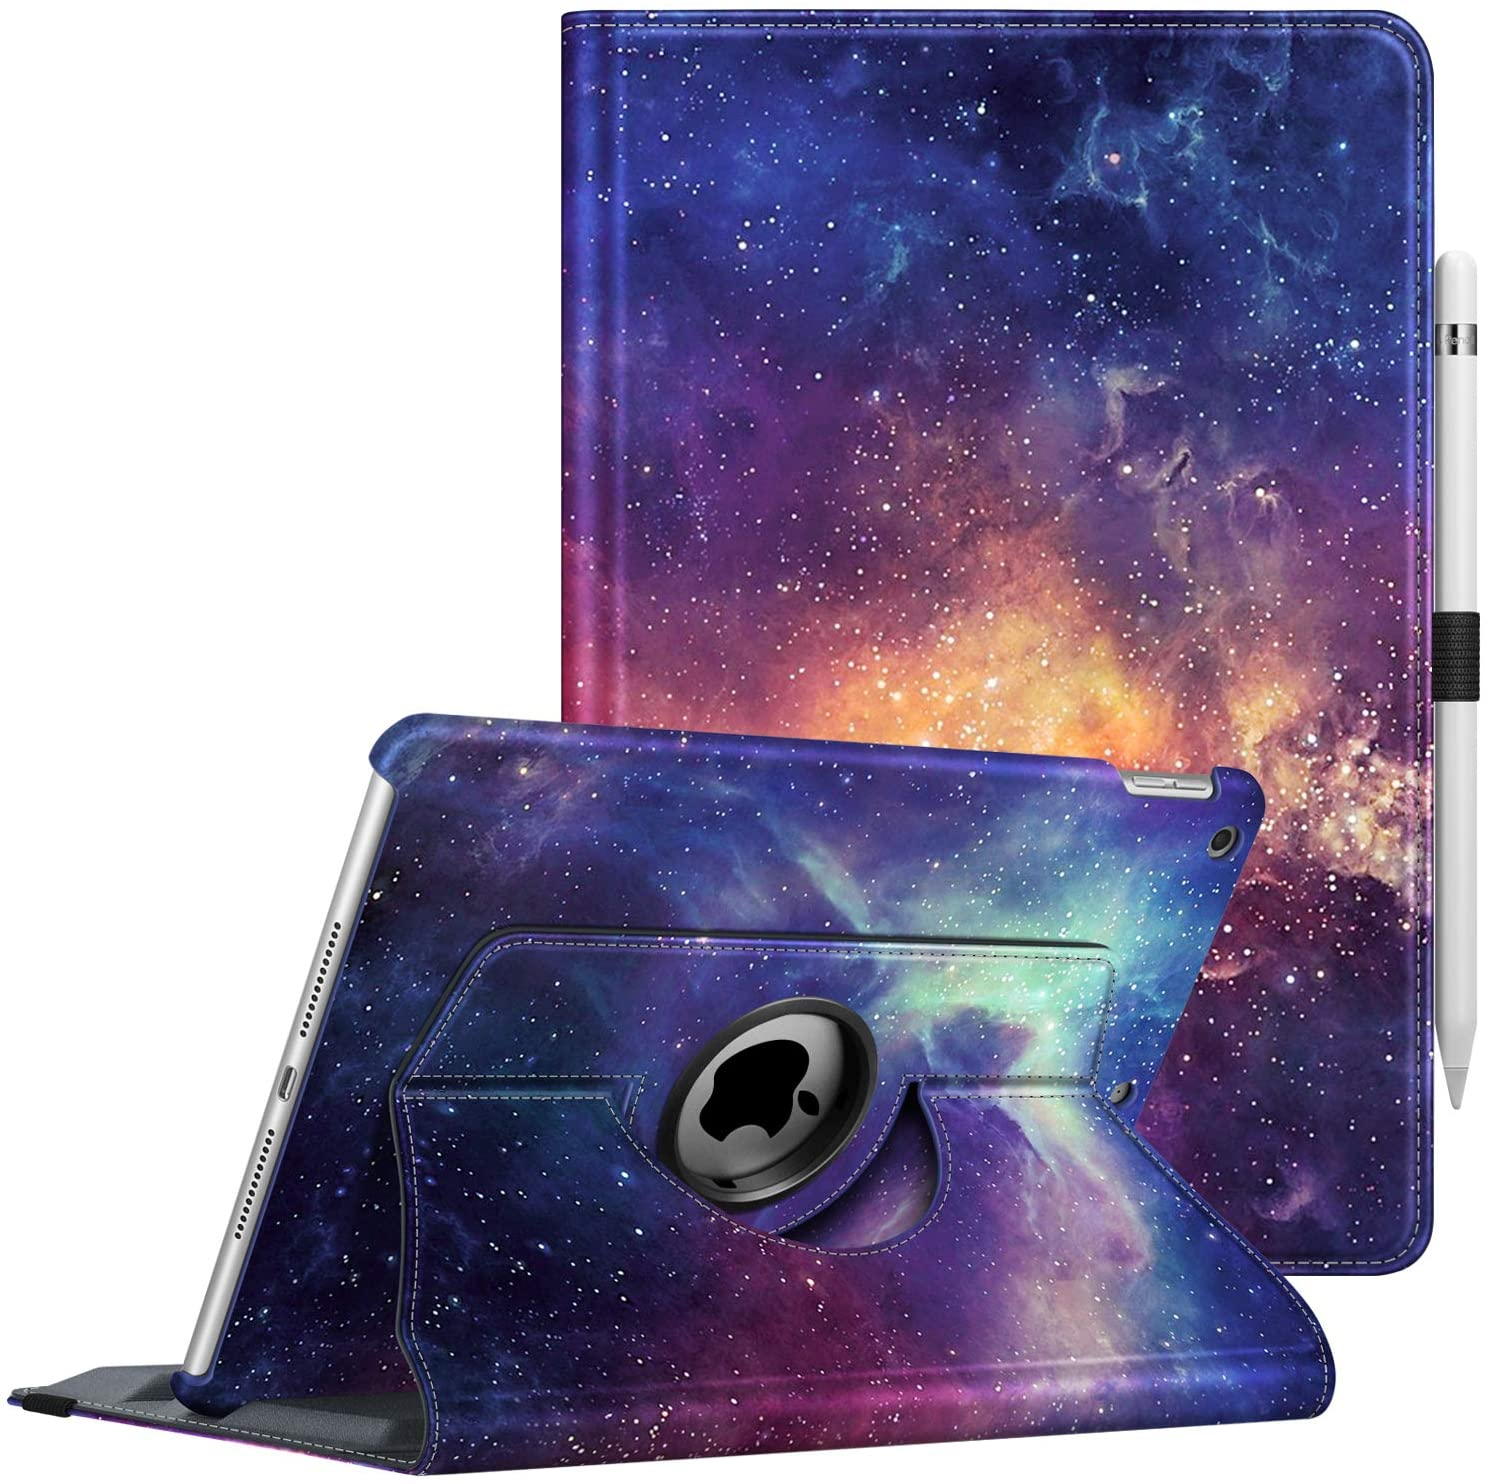 Fintie Case for iPad 7th Generation 10.2 Inch 2019-360 Degree Rotating Smart Stand Protective Back Cover, Supports Auto Wake/Sleep for iPad 10.2